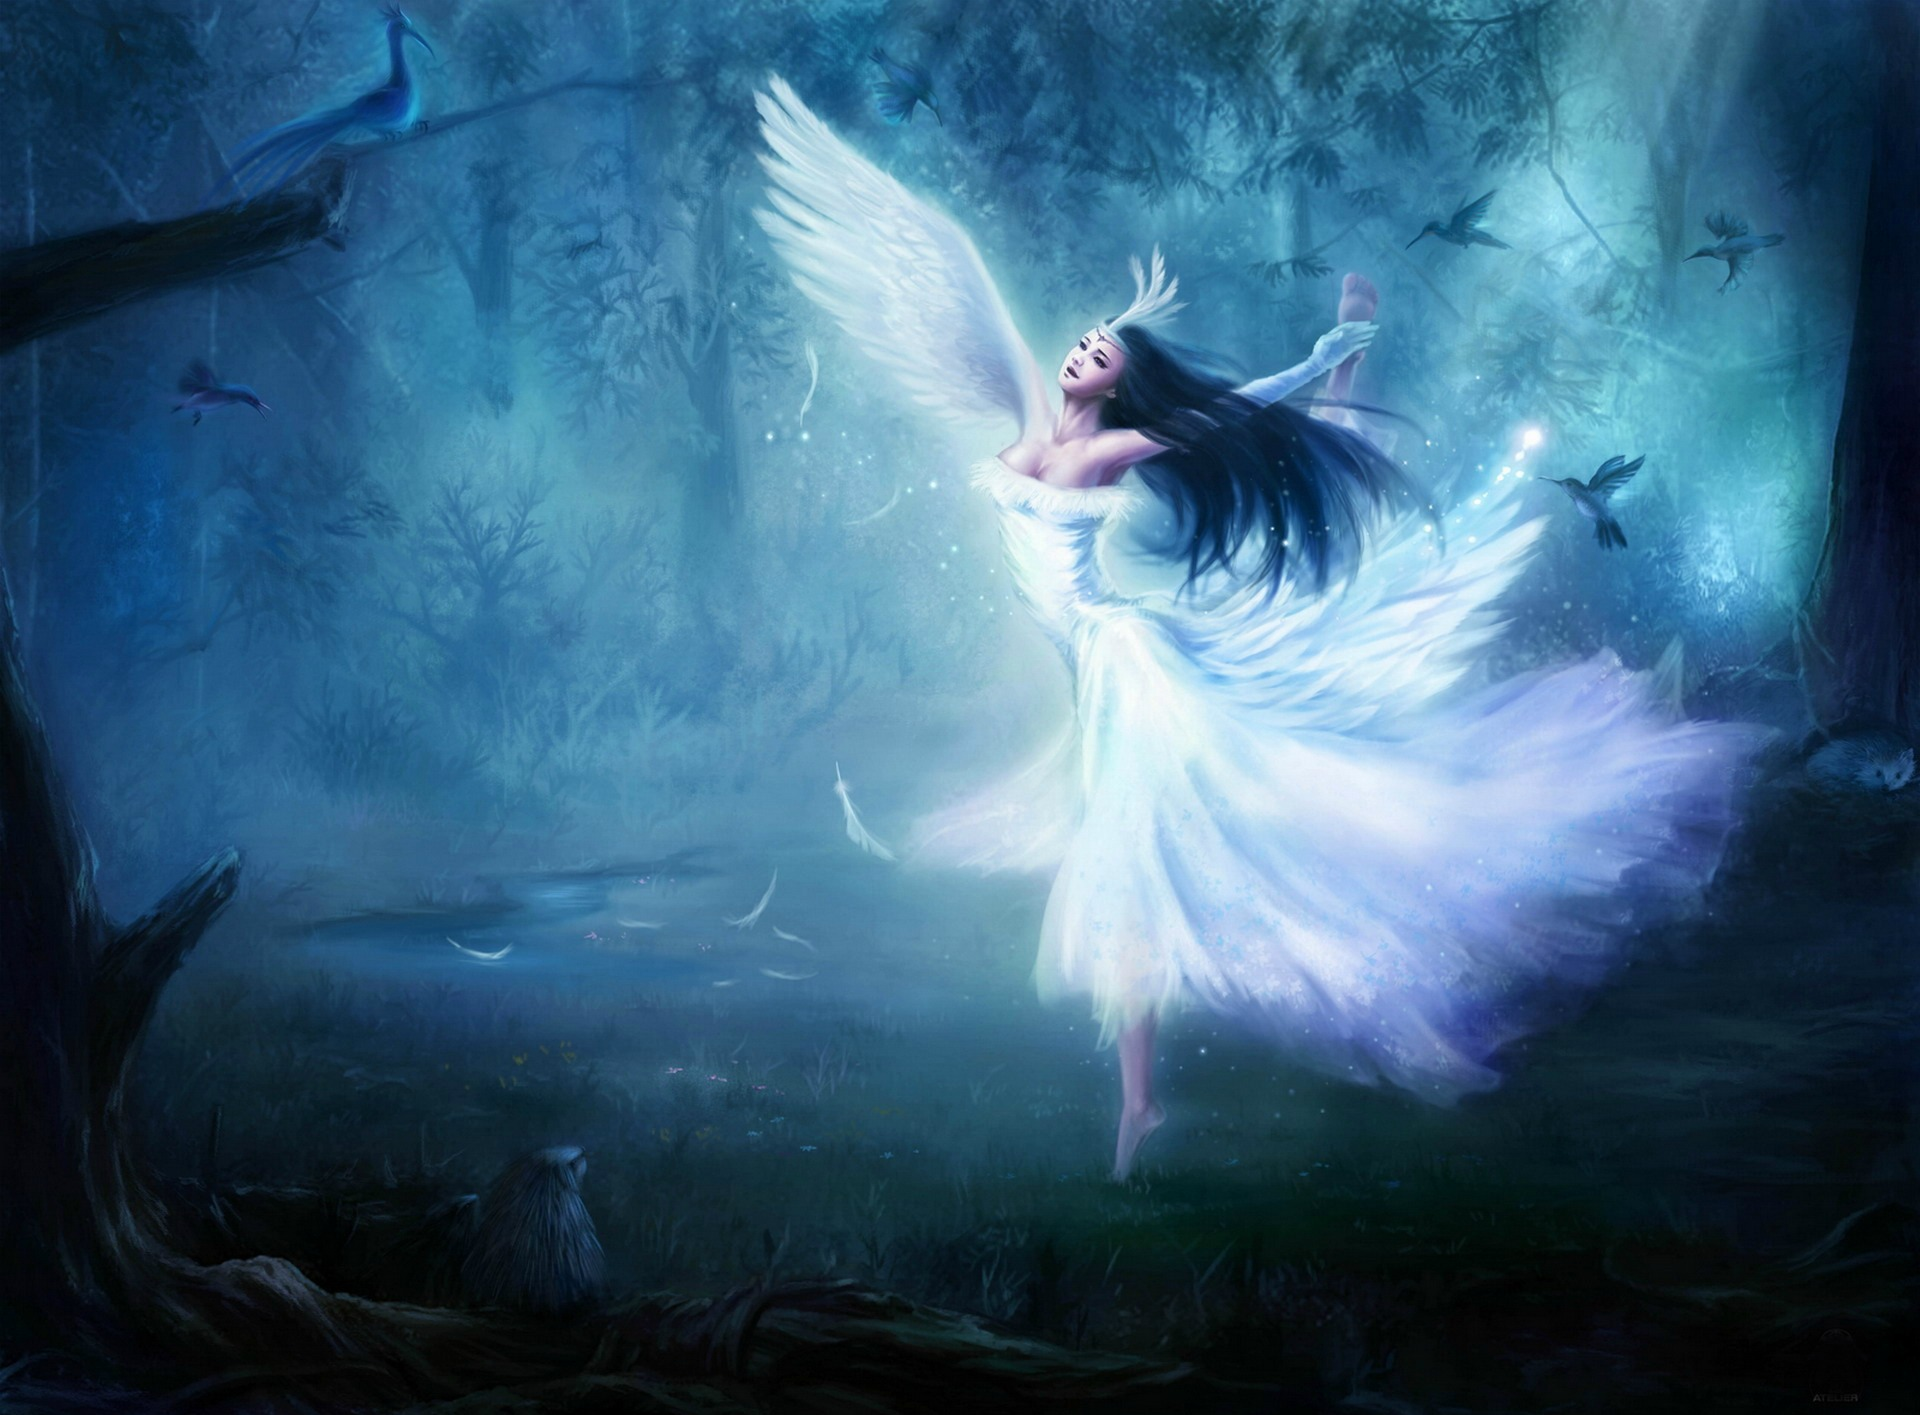 Fairy Computer Wallpapers Desktop Backgrounds 1920x1415 ID171003 1920x1415